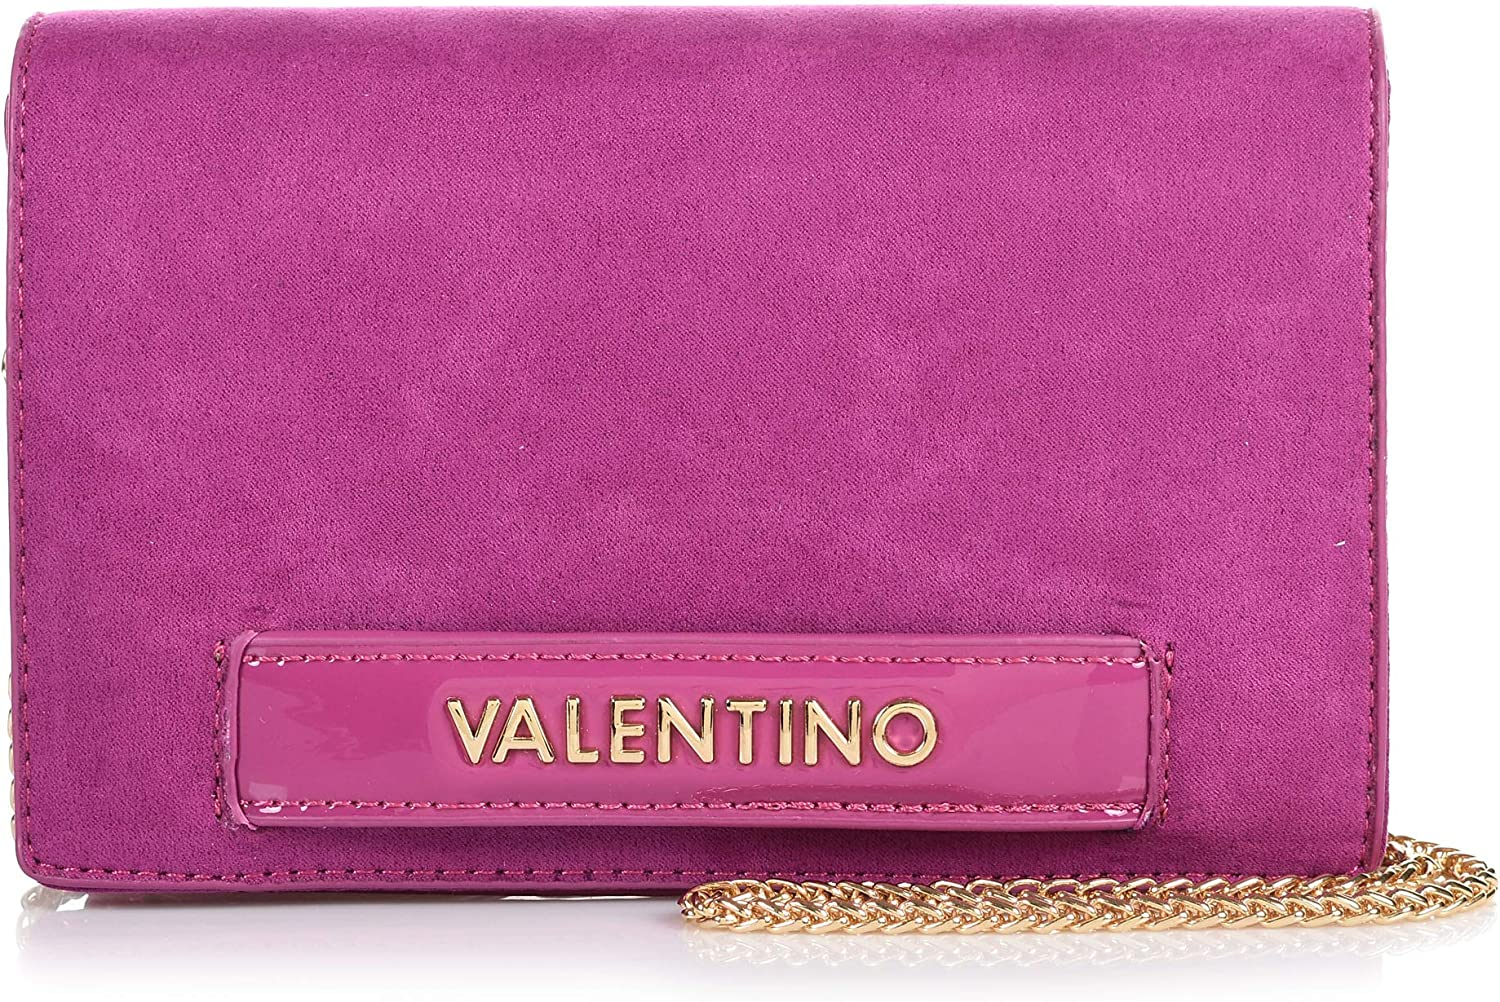 Mario Valentino Scoop Clutch with Removable gold Chain Strap